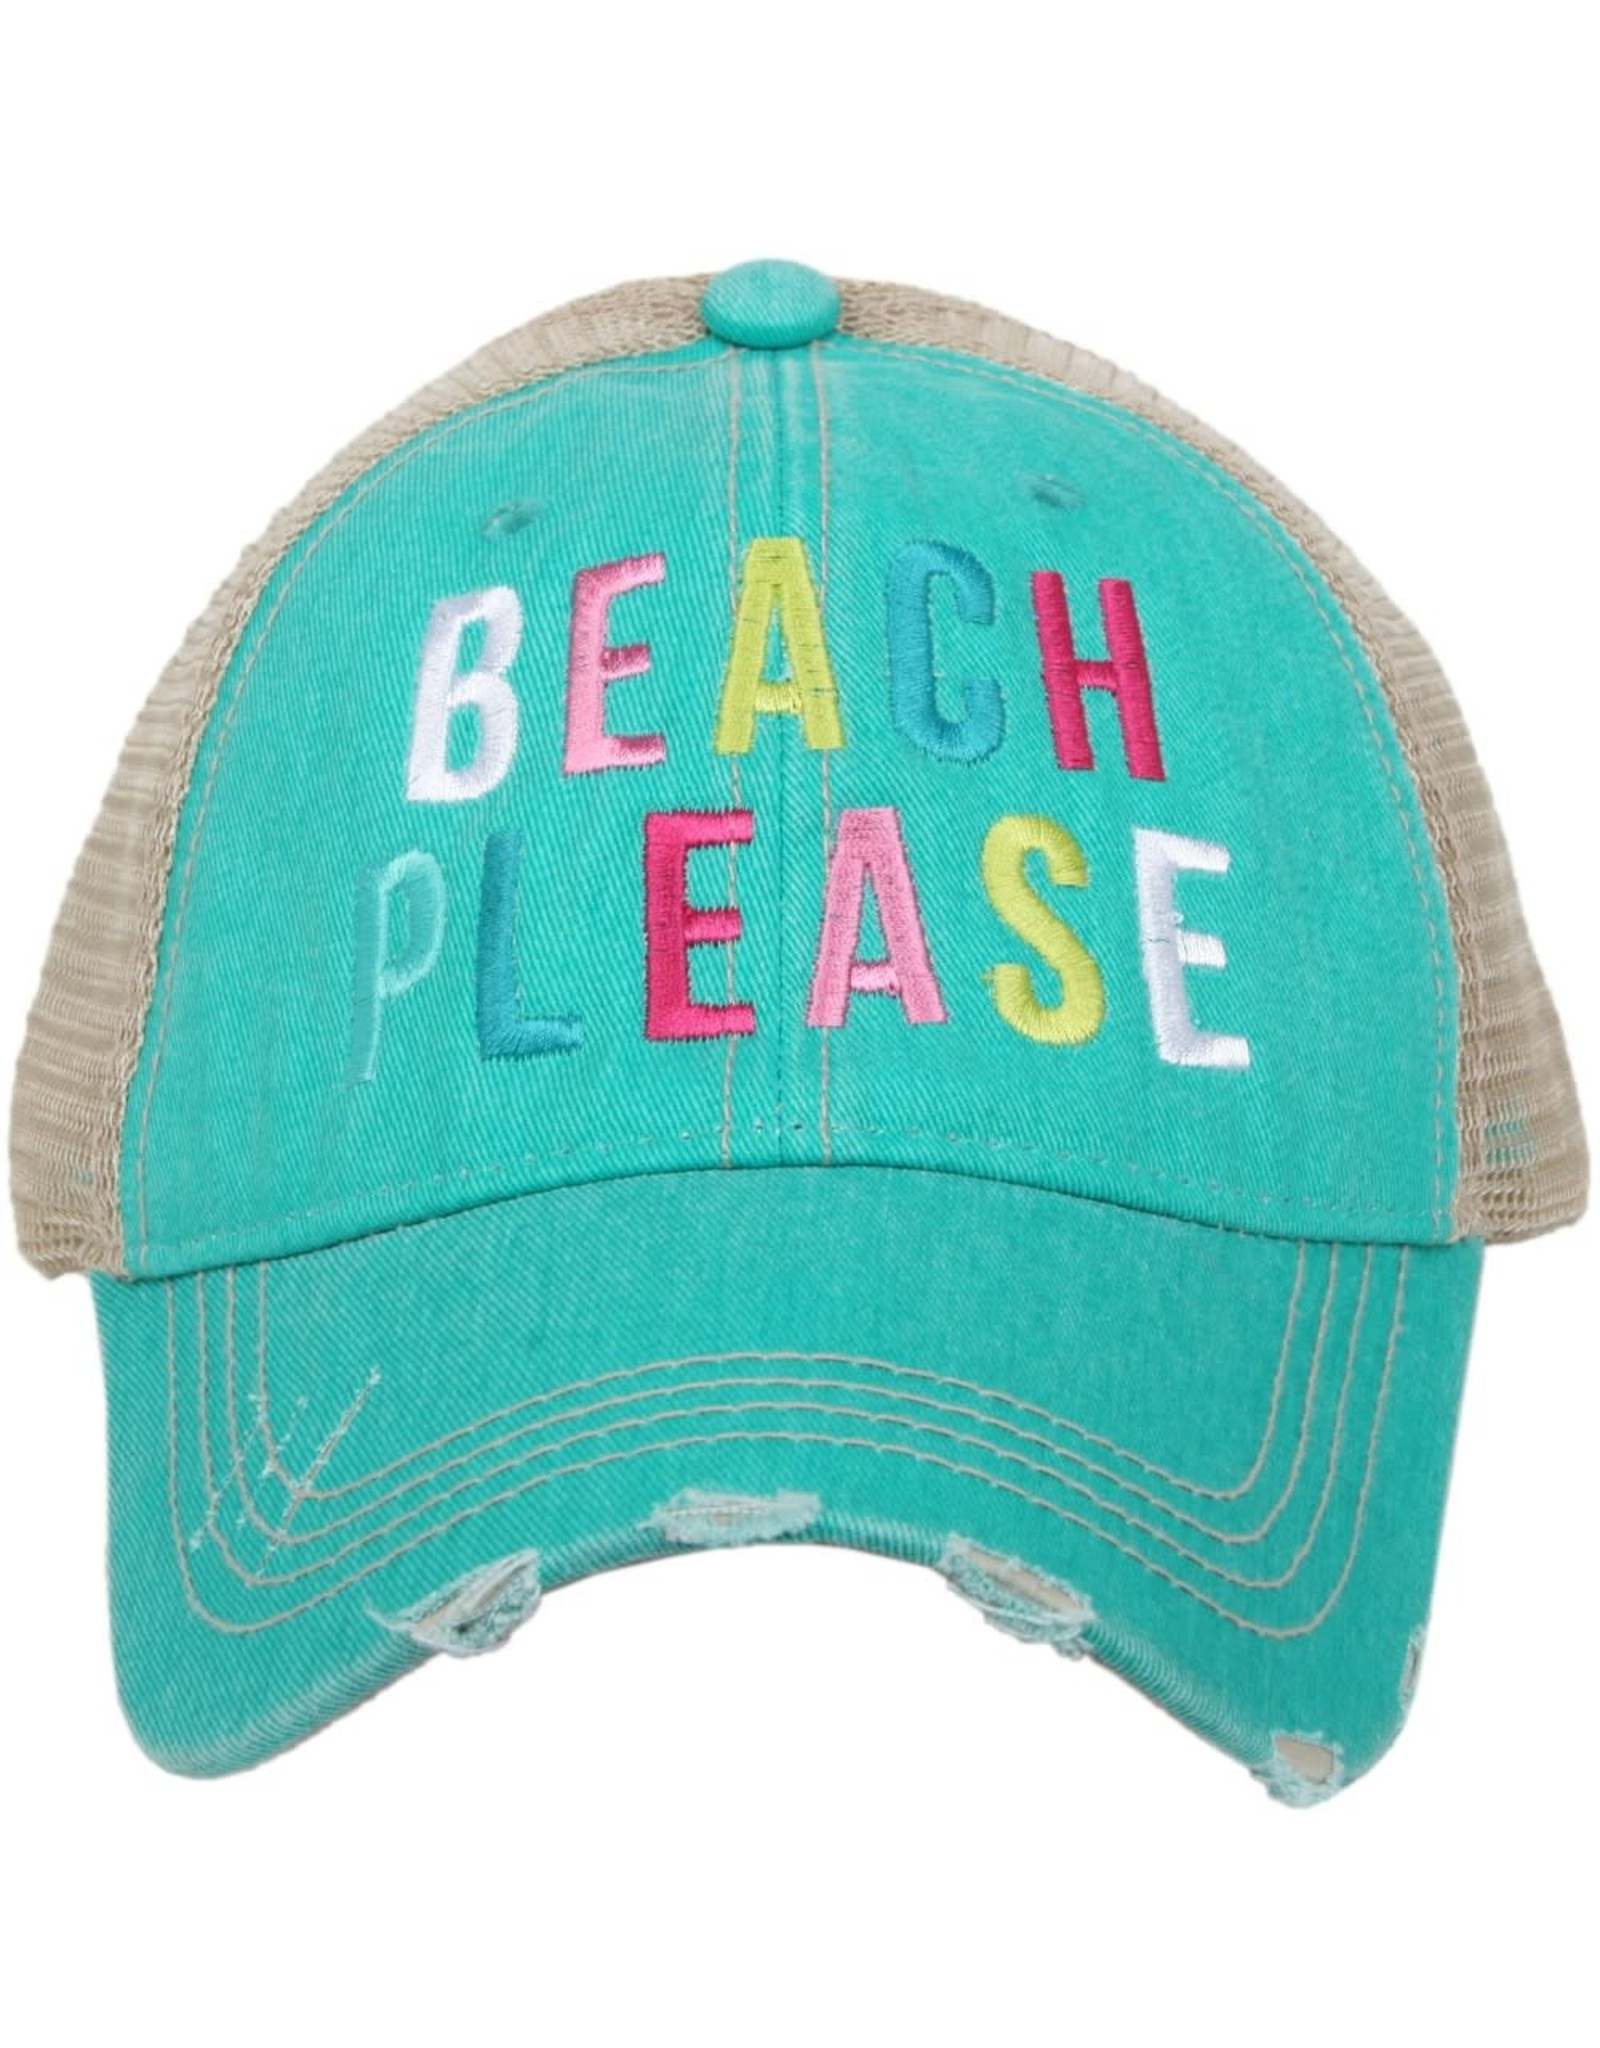 TLC BEACH PLEASE TRUCKER HAT